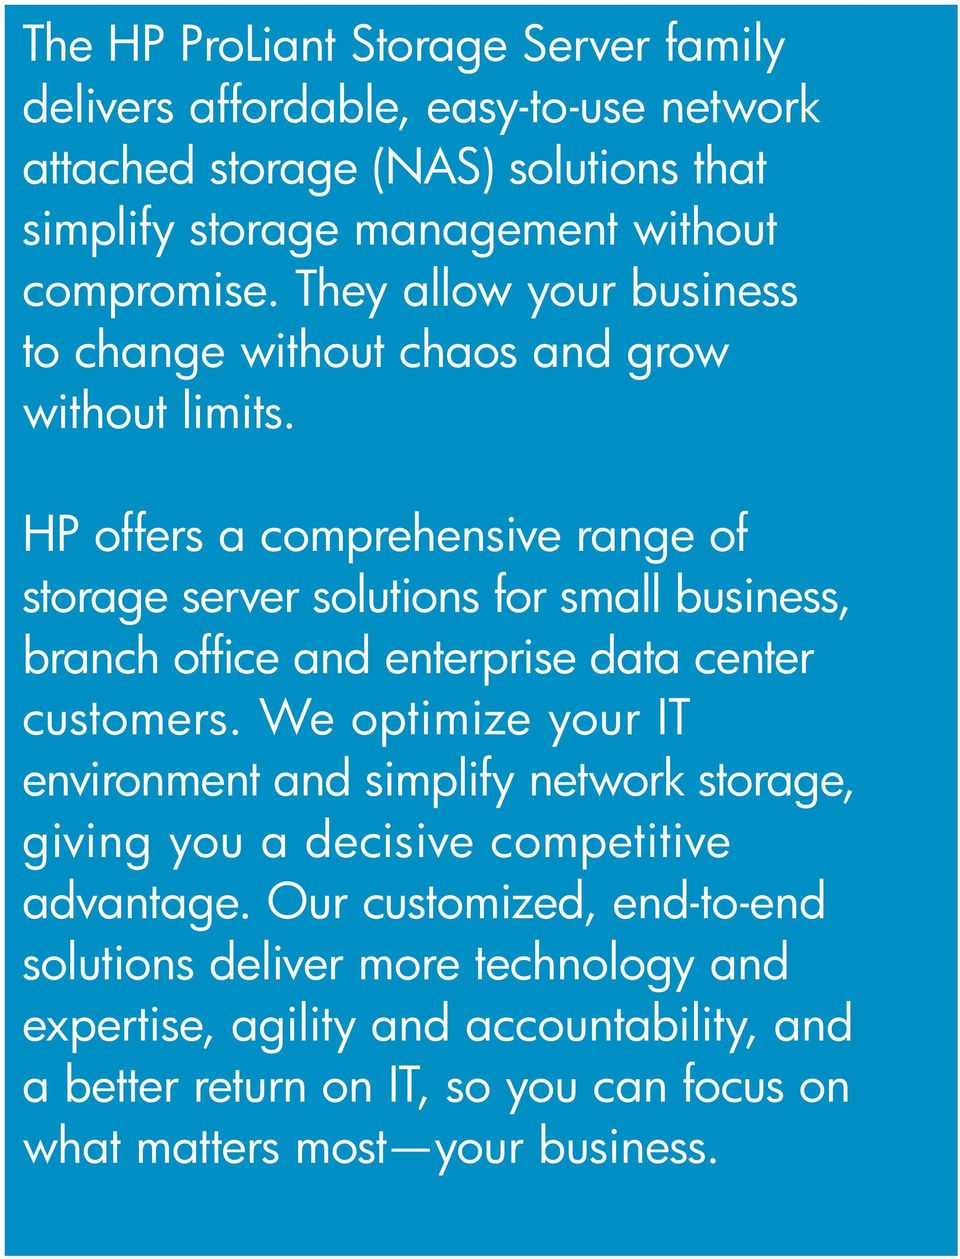 HP offers a comprehensive range of storage server solutions for small business, branch office and enterprise data center customers.